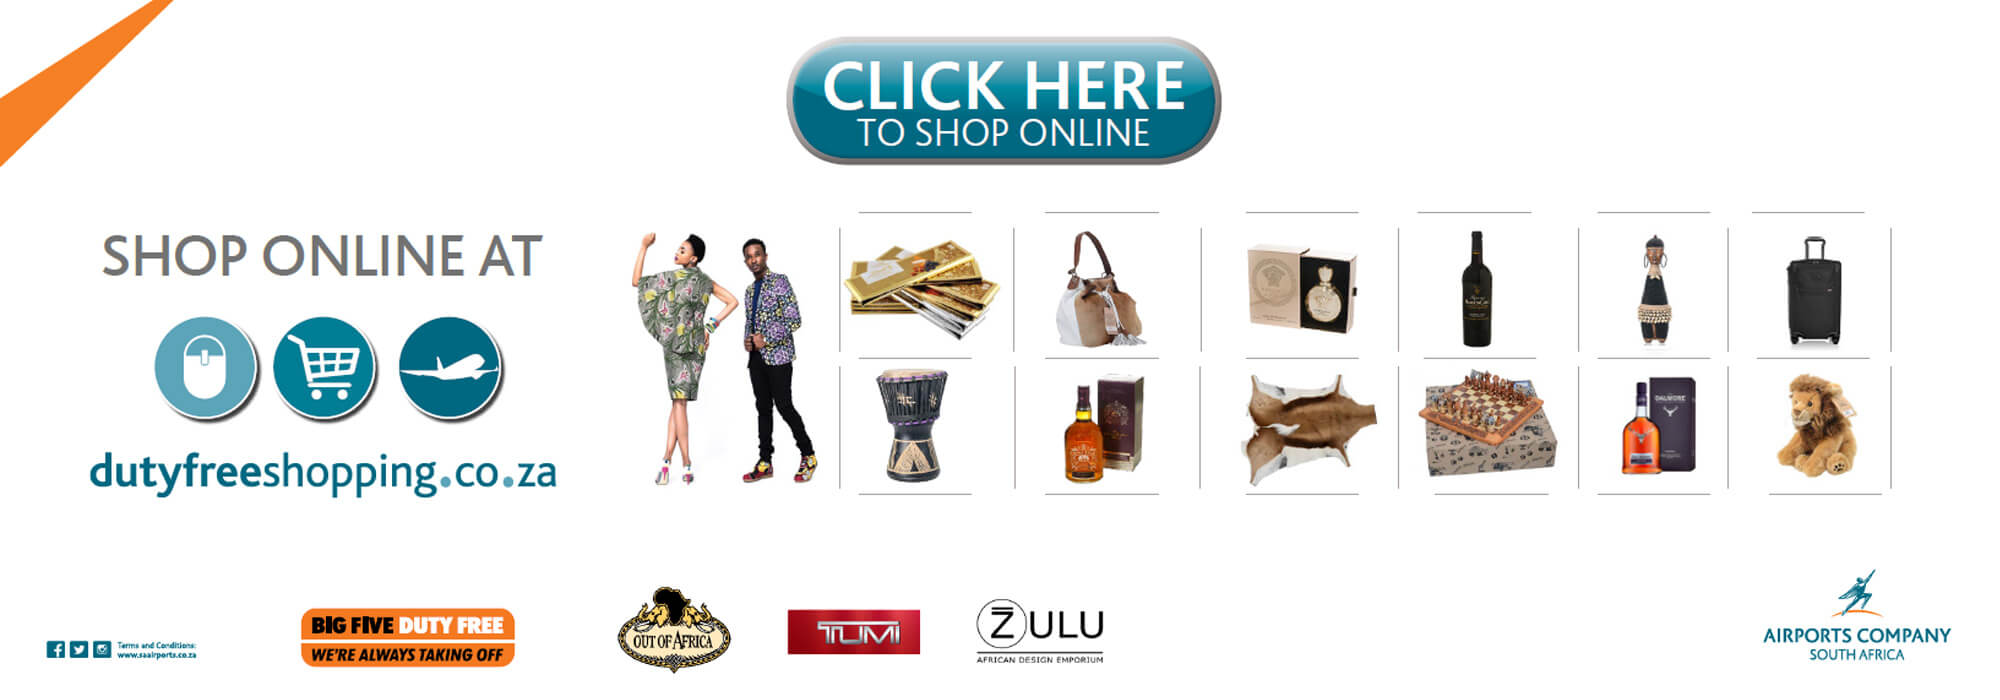 Shop Online at dutyfreeshopping.co.za zh